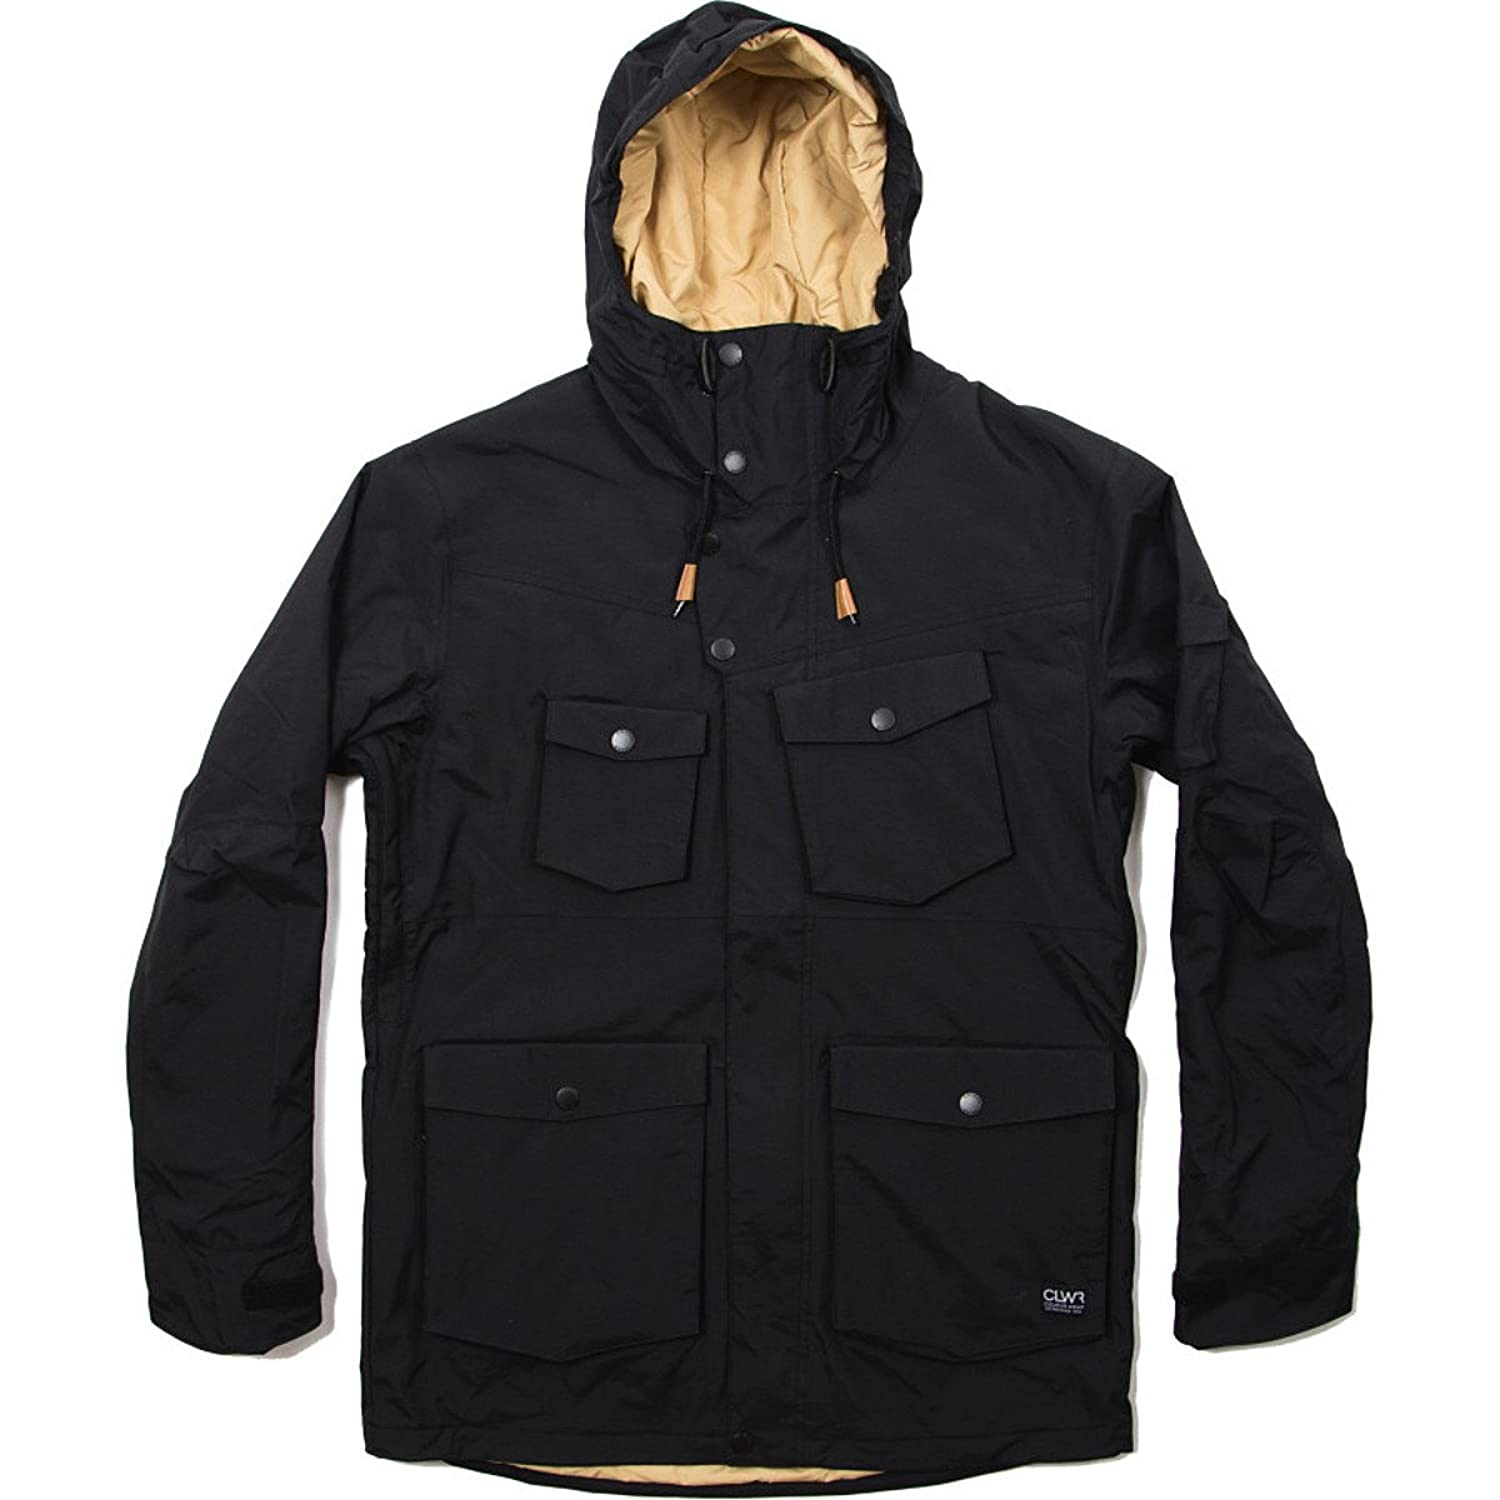 CLWR Ambush Pullover Jacket - Men's